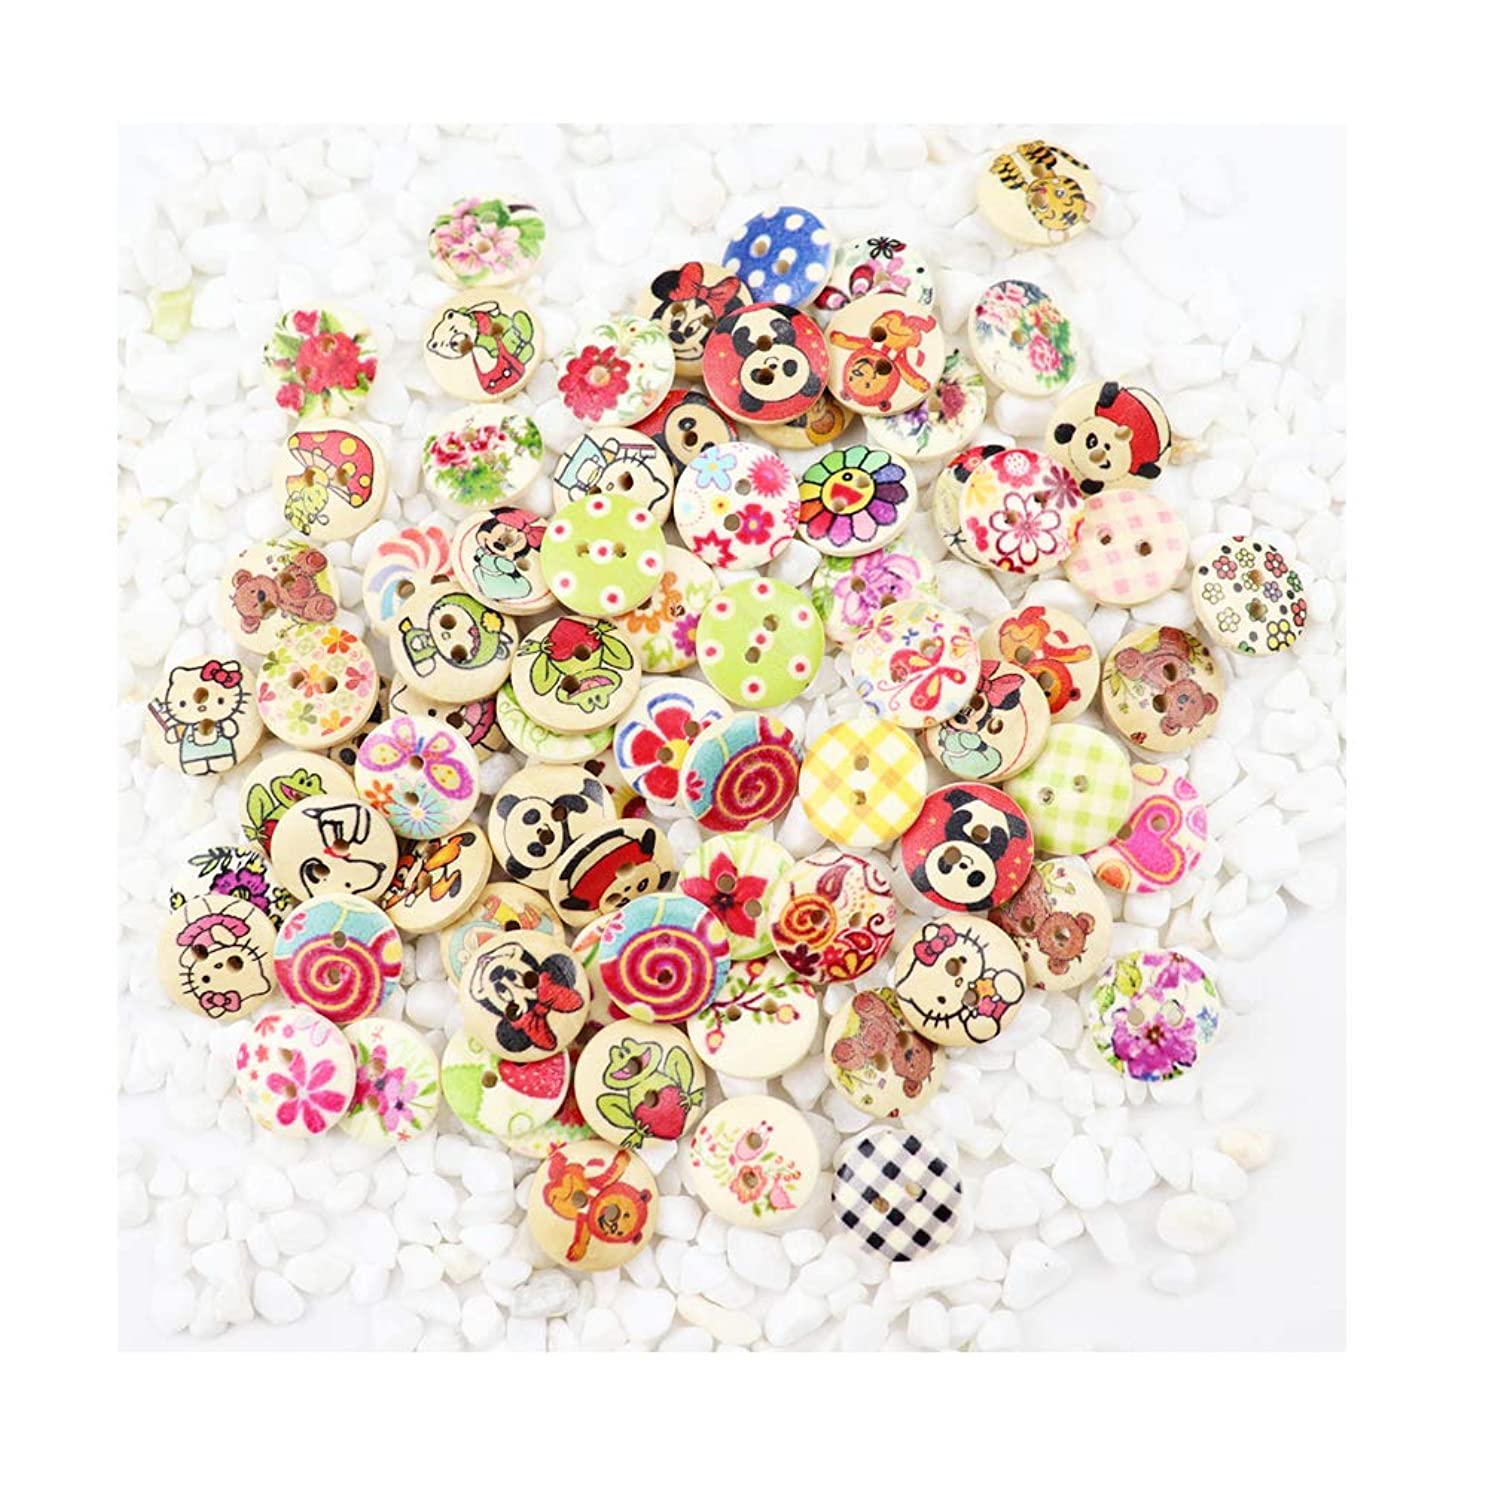 WYSE 200pcs Mixed Kids Cartoon Animal Buttons with 2 Holes for Sewing Scrapbooking and DIY Craft 15mm(Cartoon)